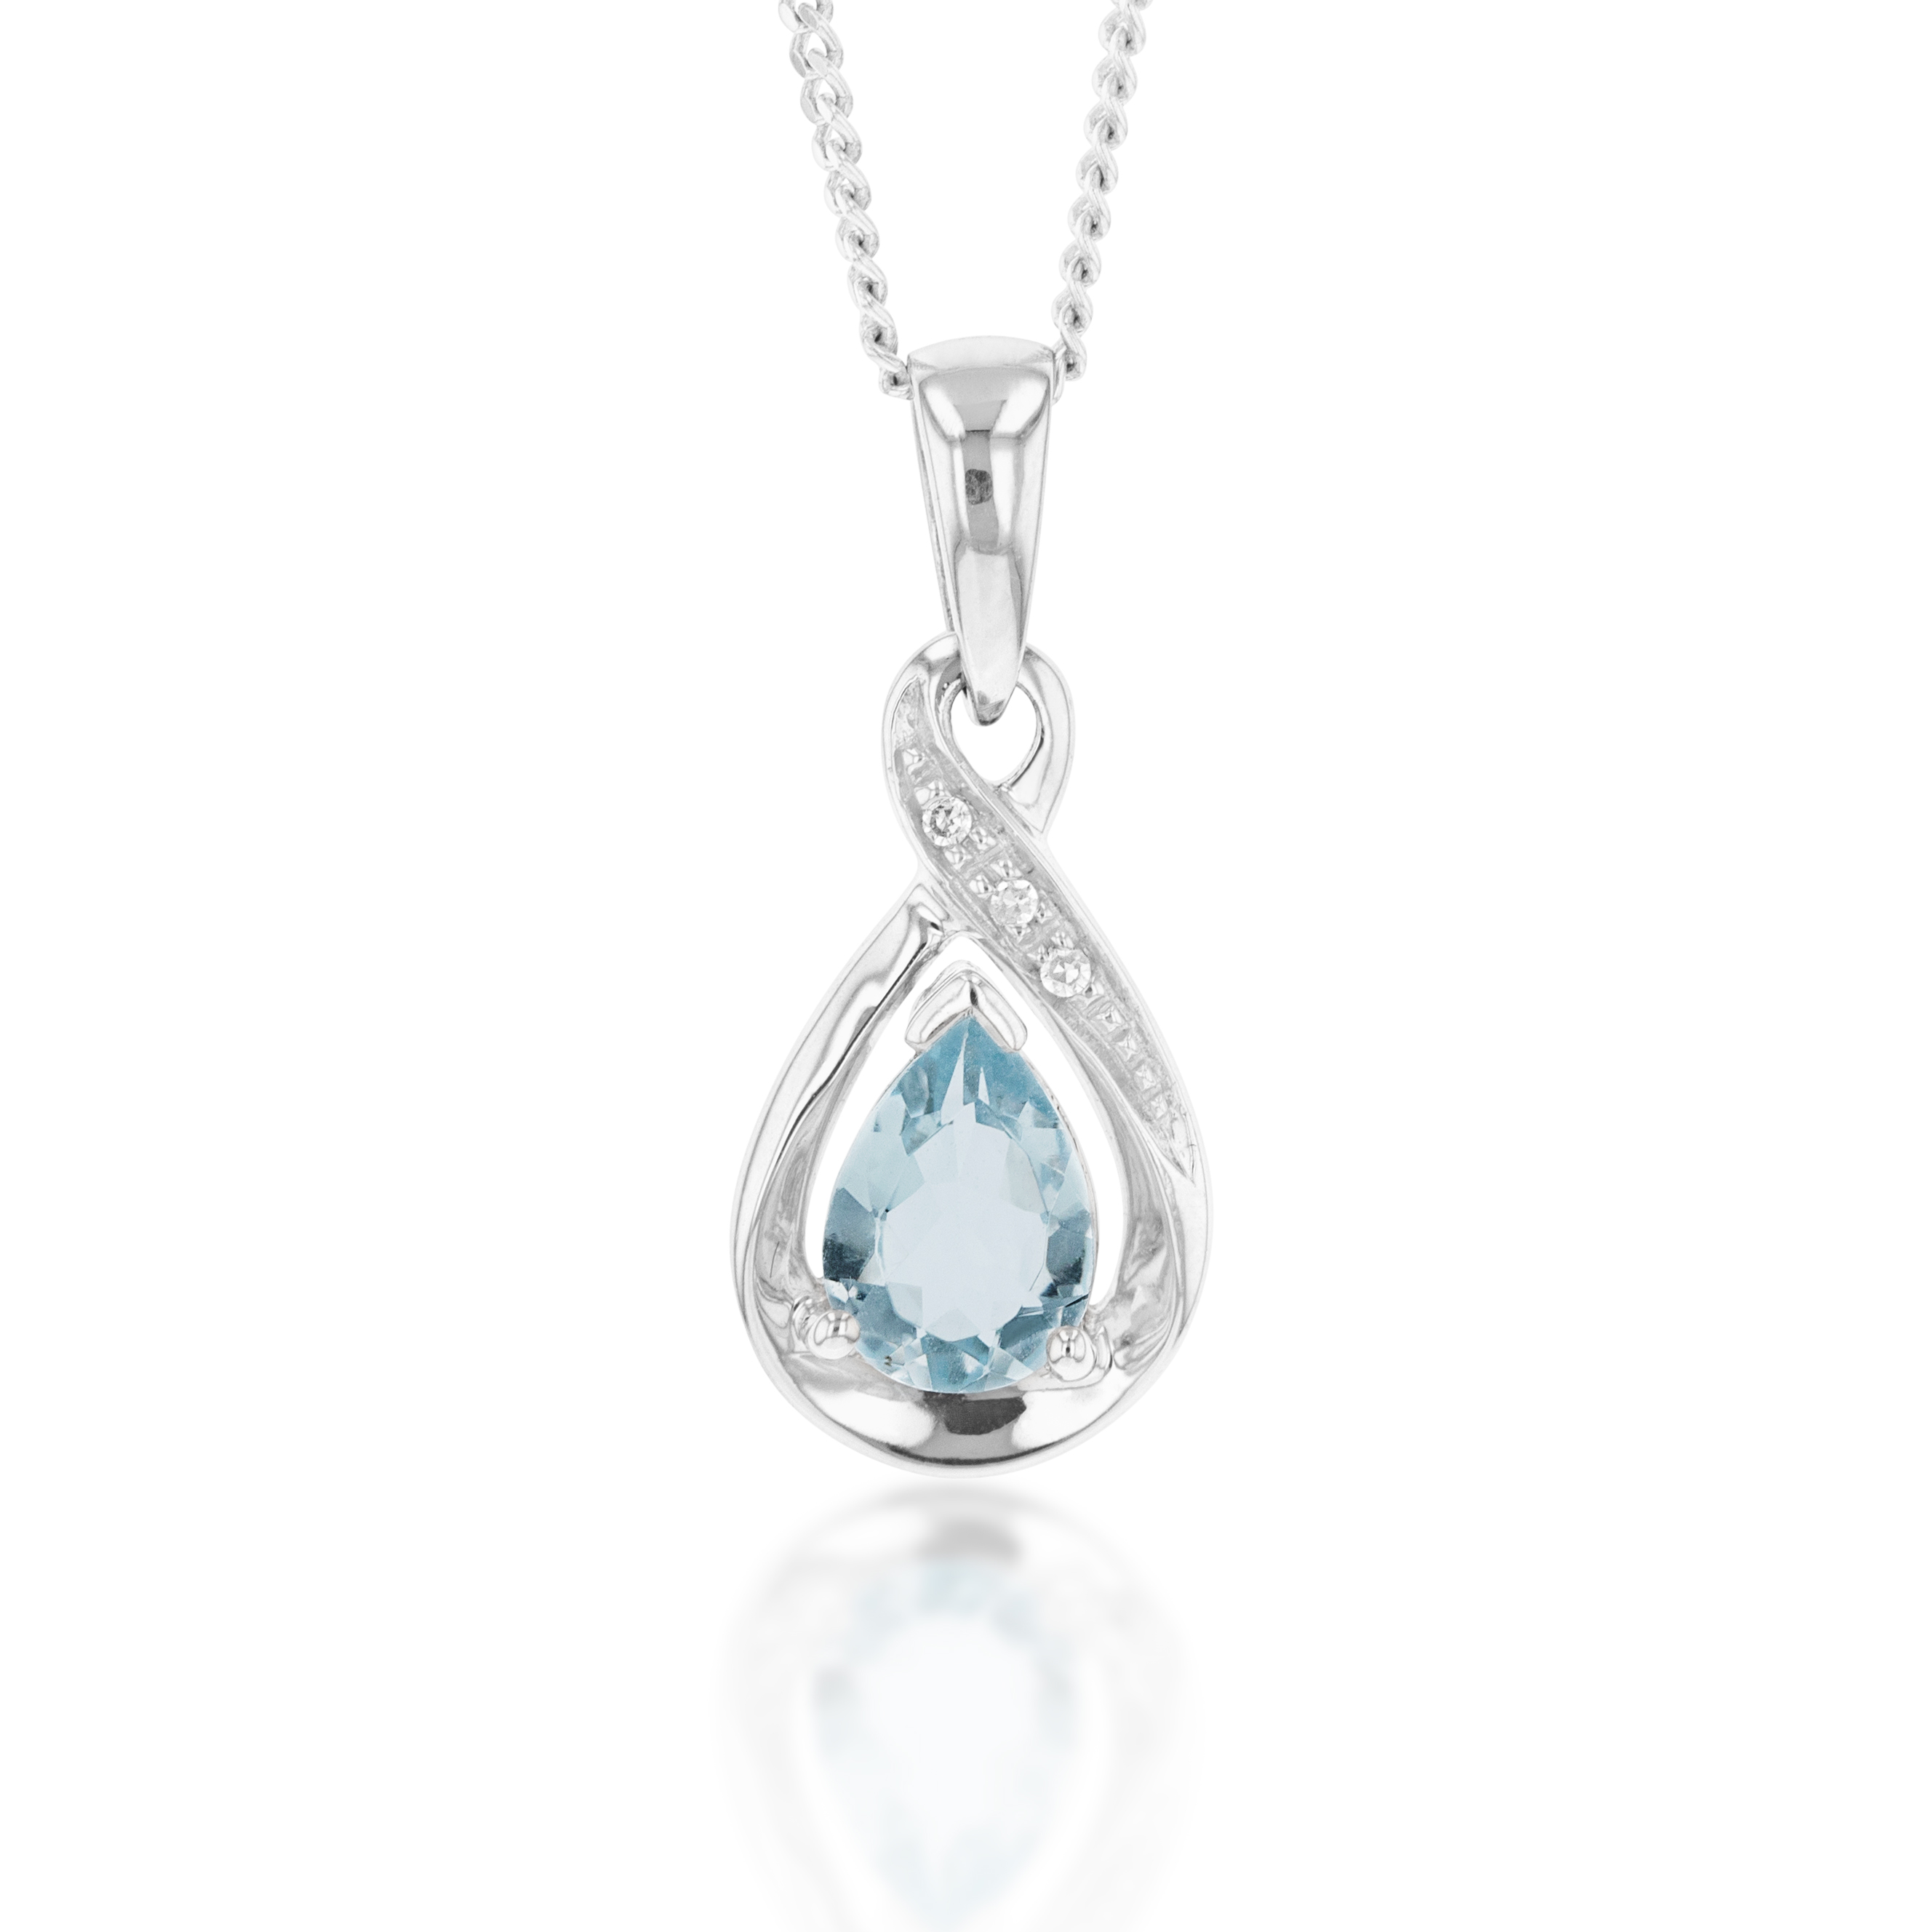 9ct White Gold Pear Shaped Aquamarine + Diamond Pendant